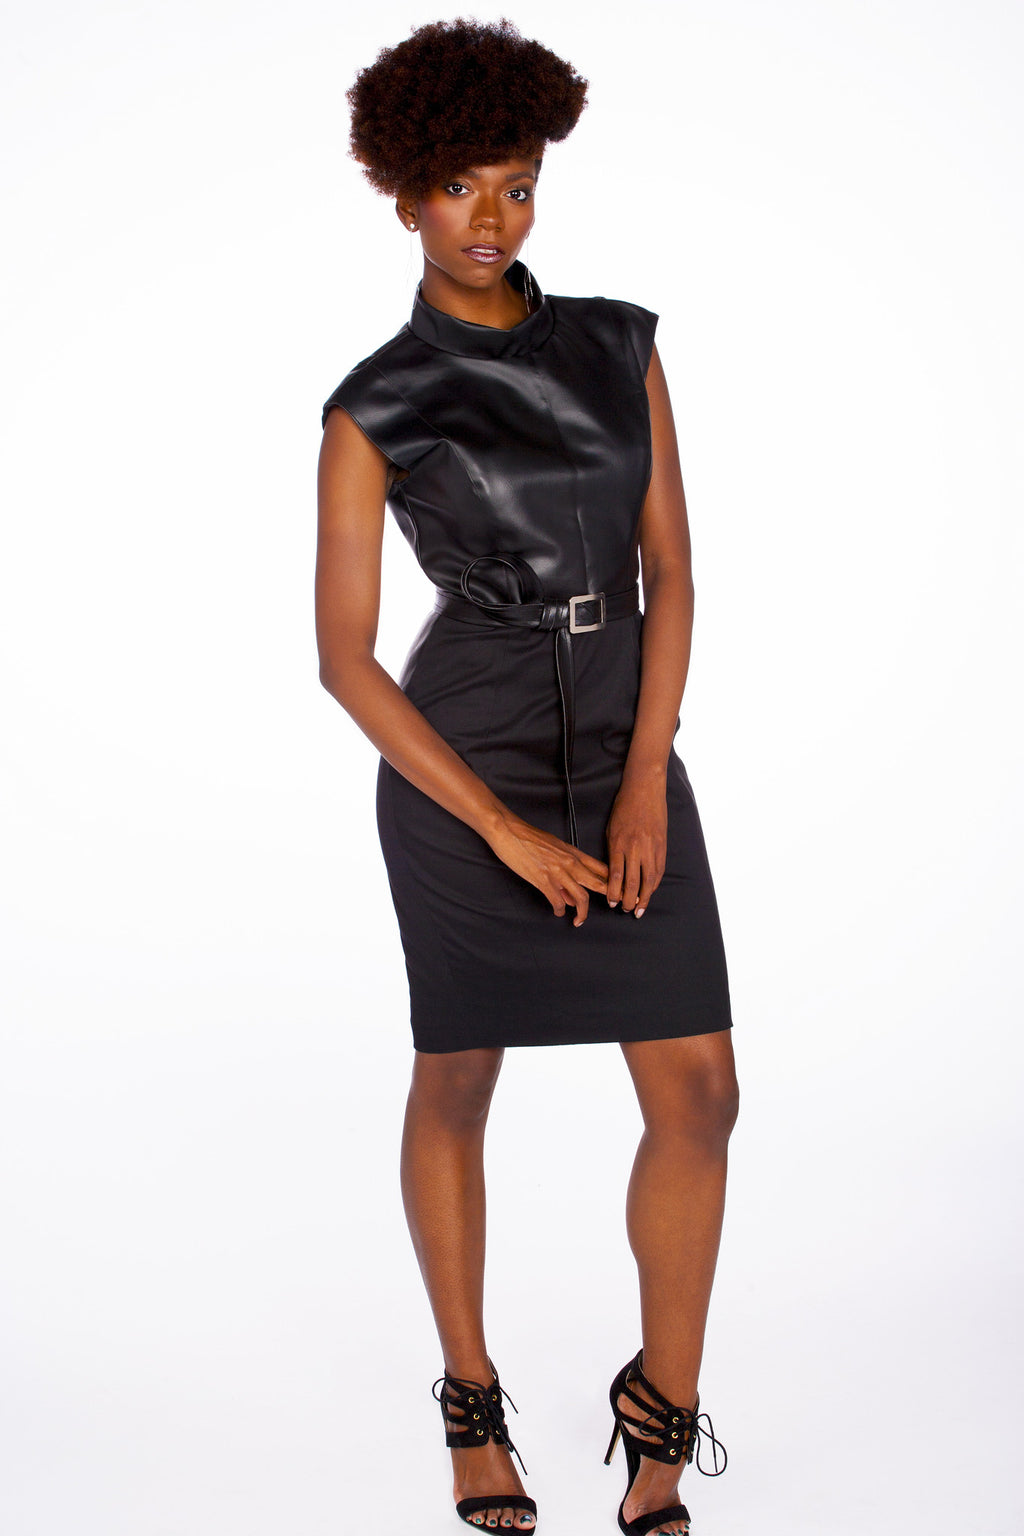 2-Tone, Eco-Leather Sheath Dress